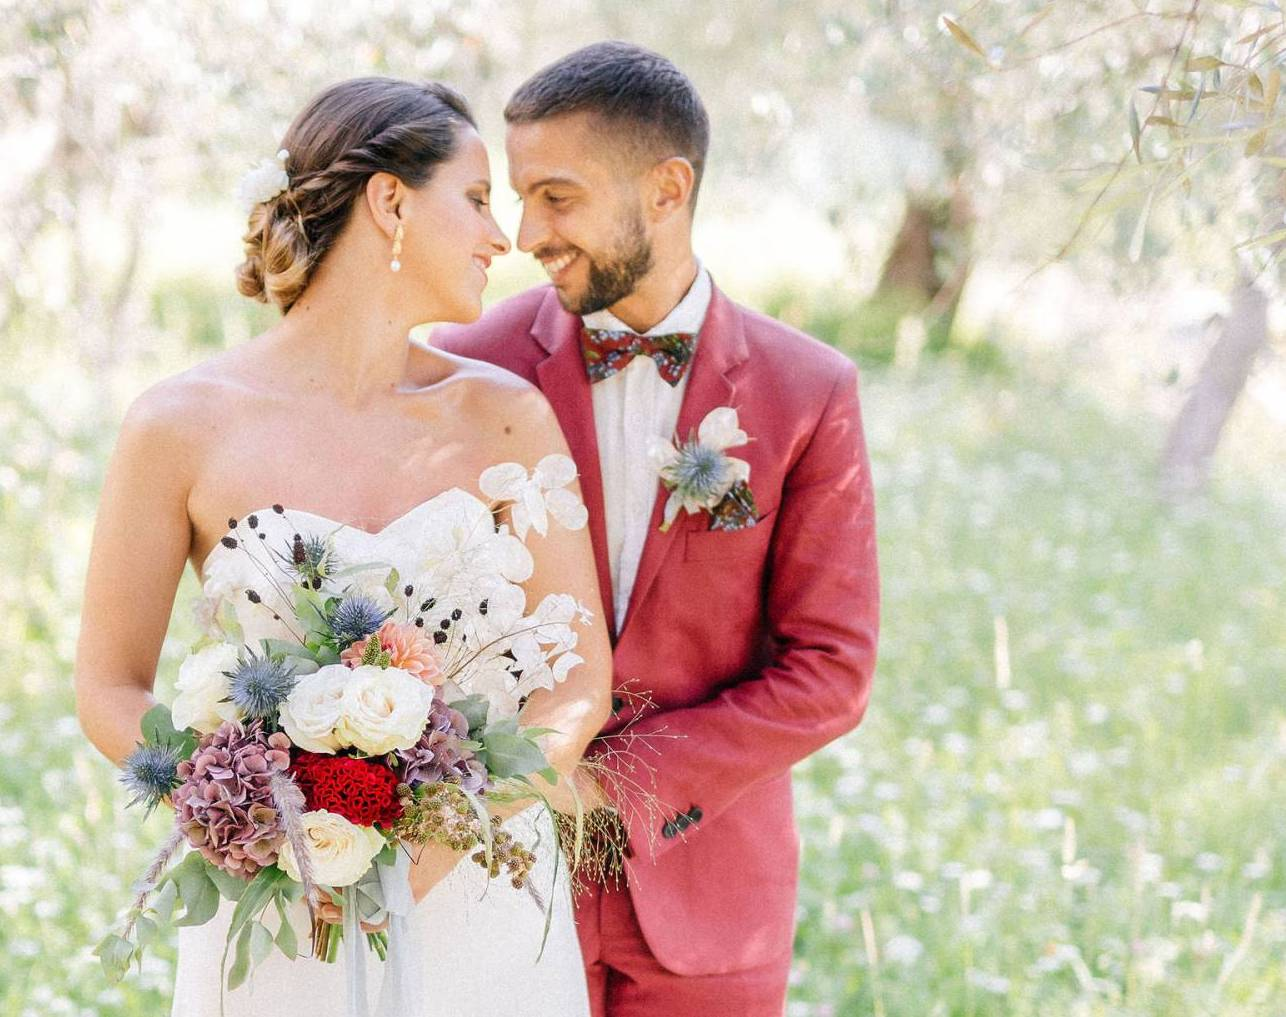 wedding-intimate-nature-olive-tuscany